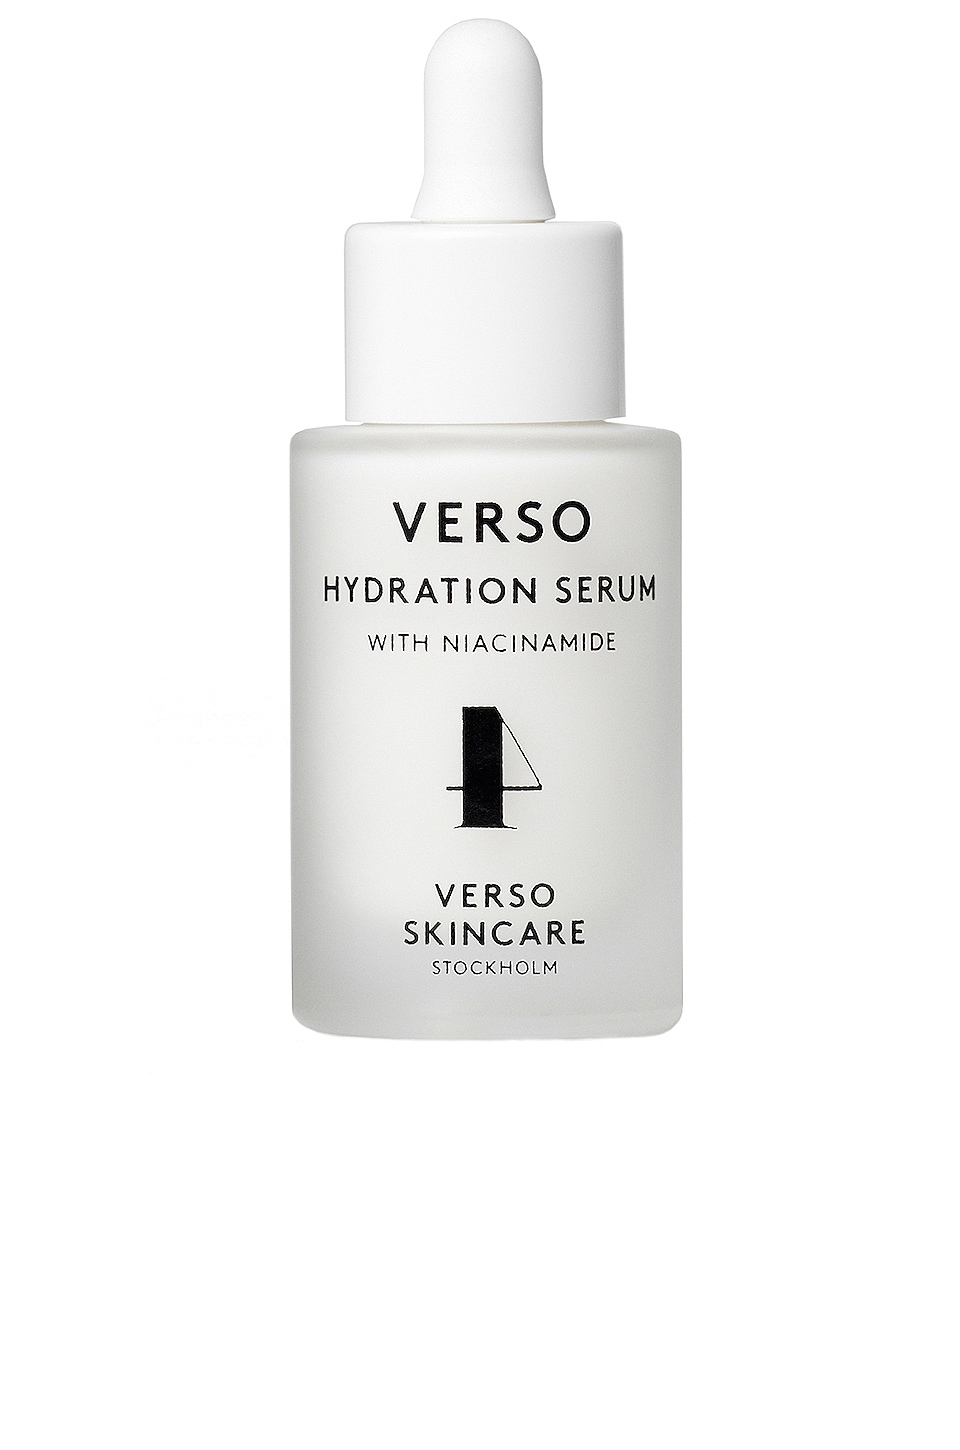 VERSO SKINCARE SÉRUM HYDRATION SERUM